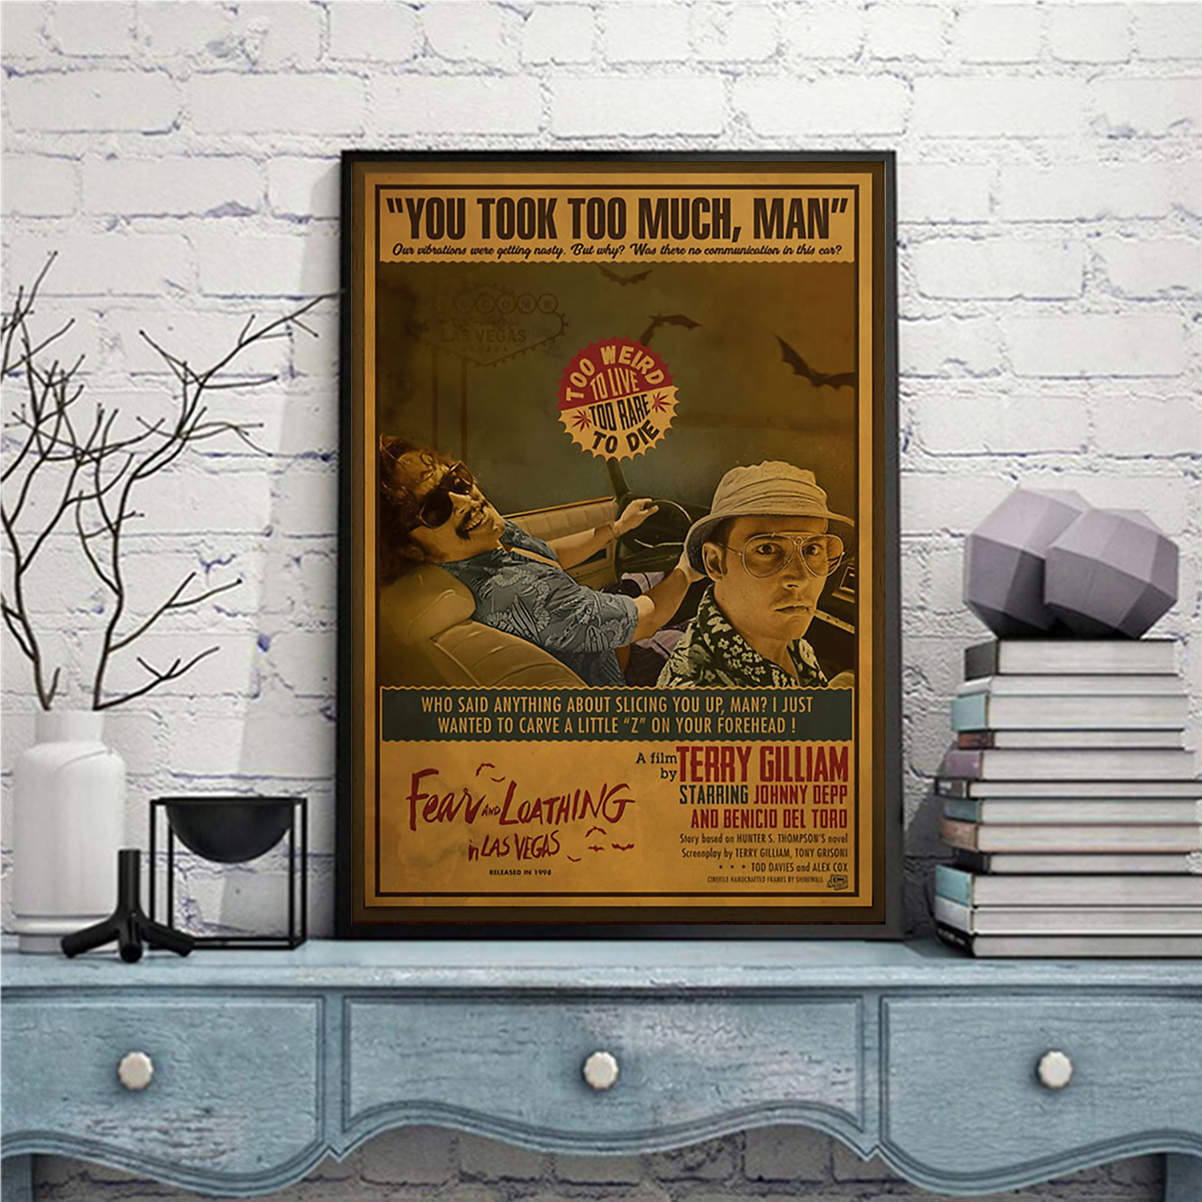 Fear and loathing in las vegas you took too much man poster A1